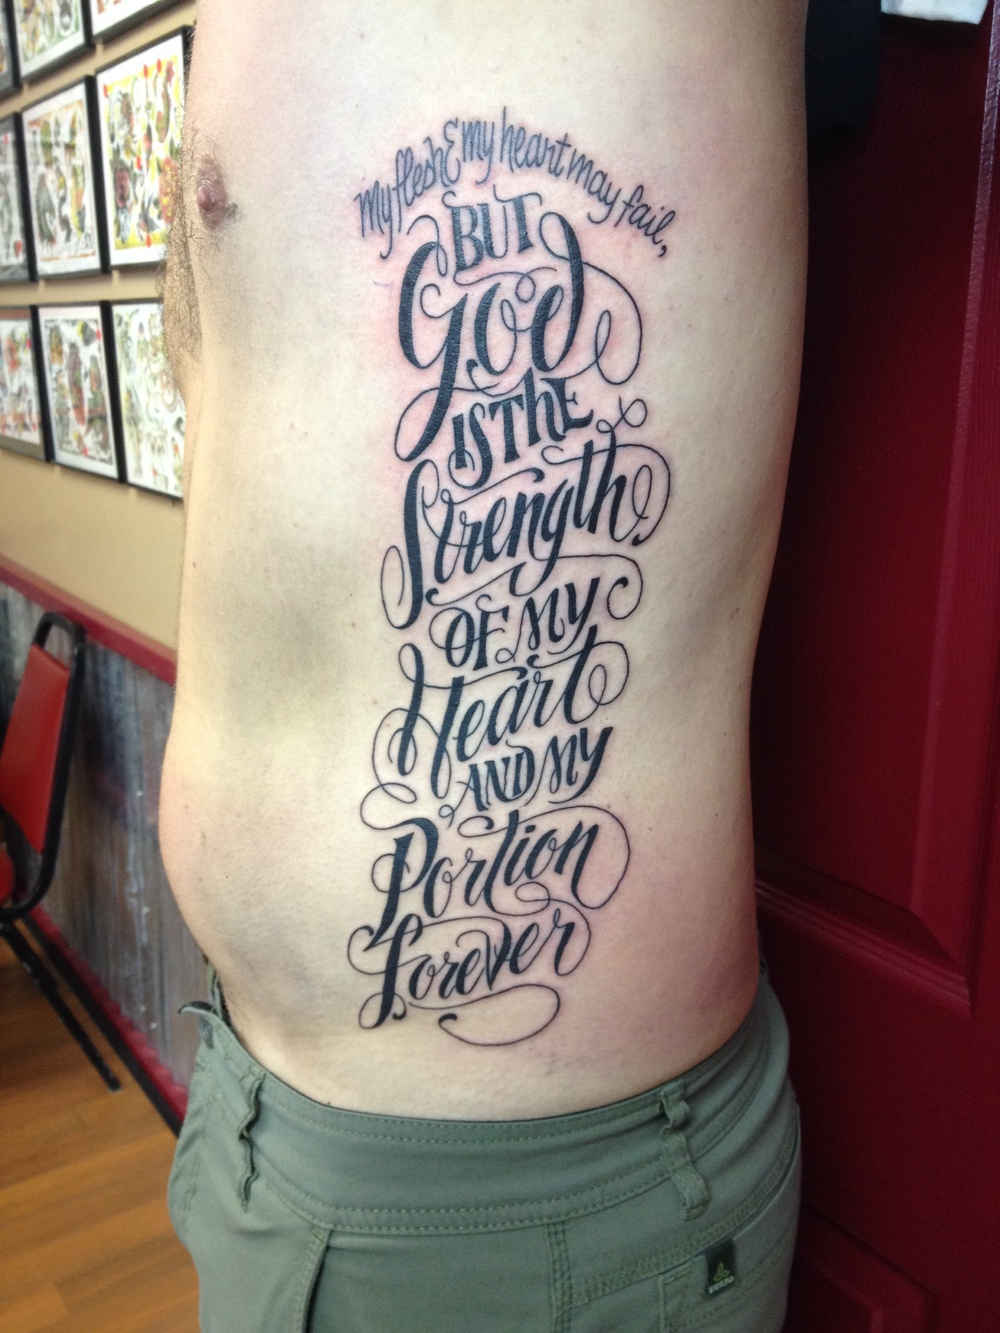 Joe's awesome tattoo of Psalm 73:26